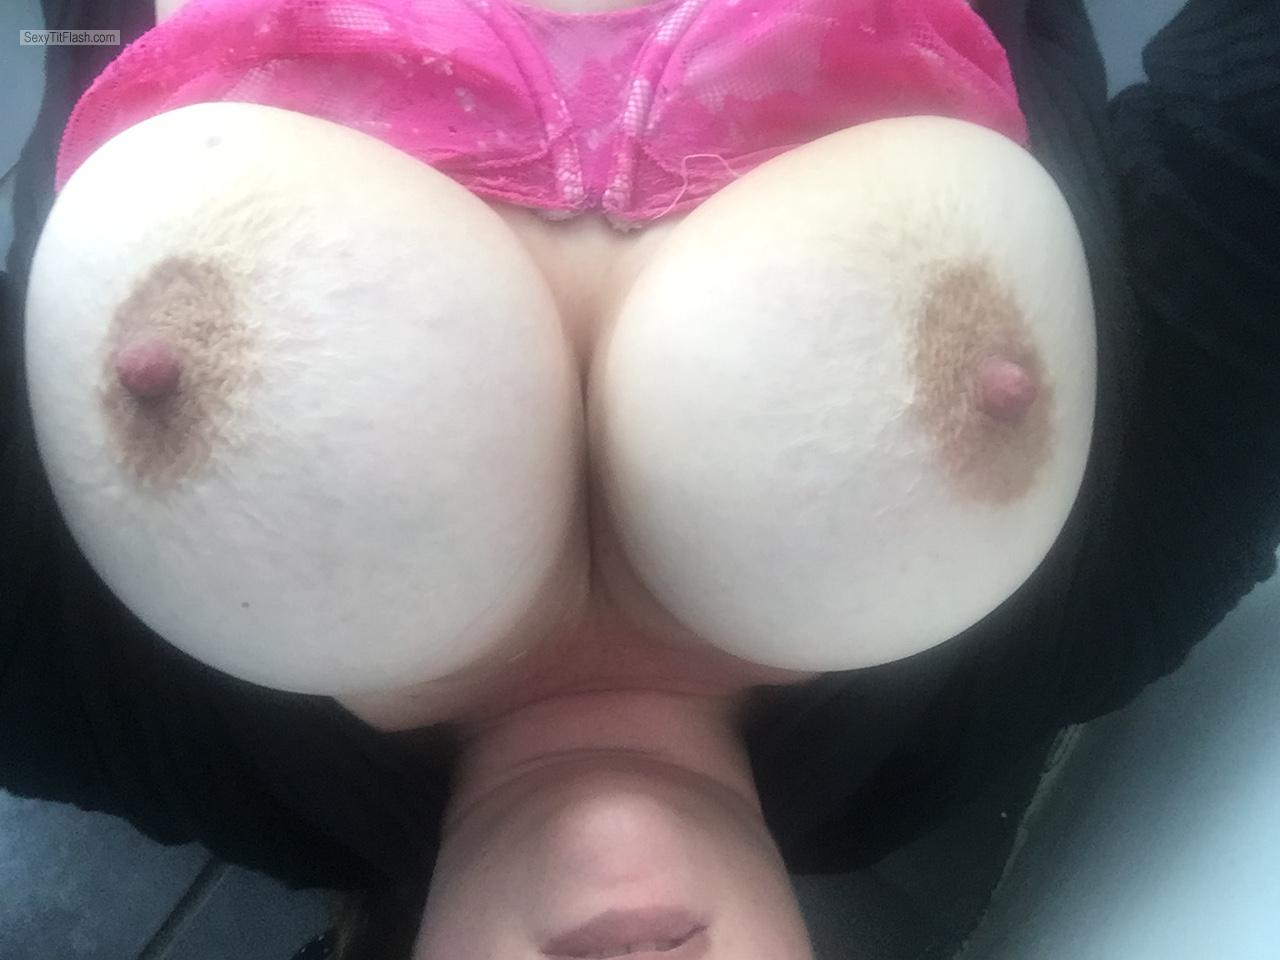 Tit Flash: My Very Big Tits (Selfie) - Milftits from South Africa